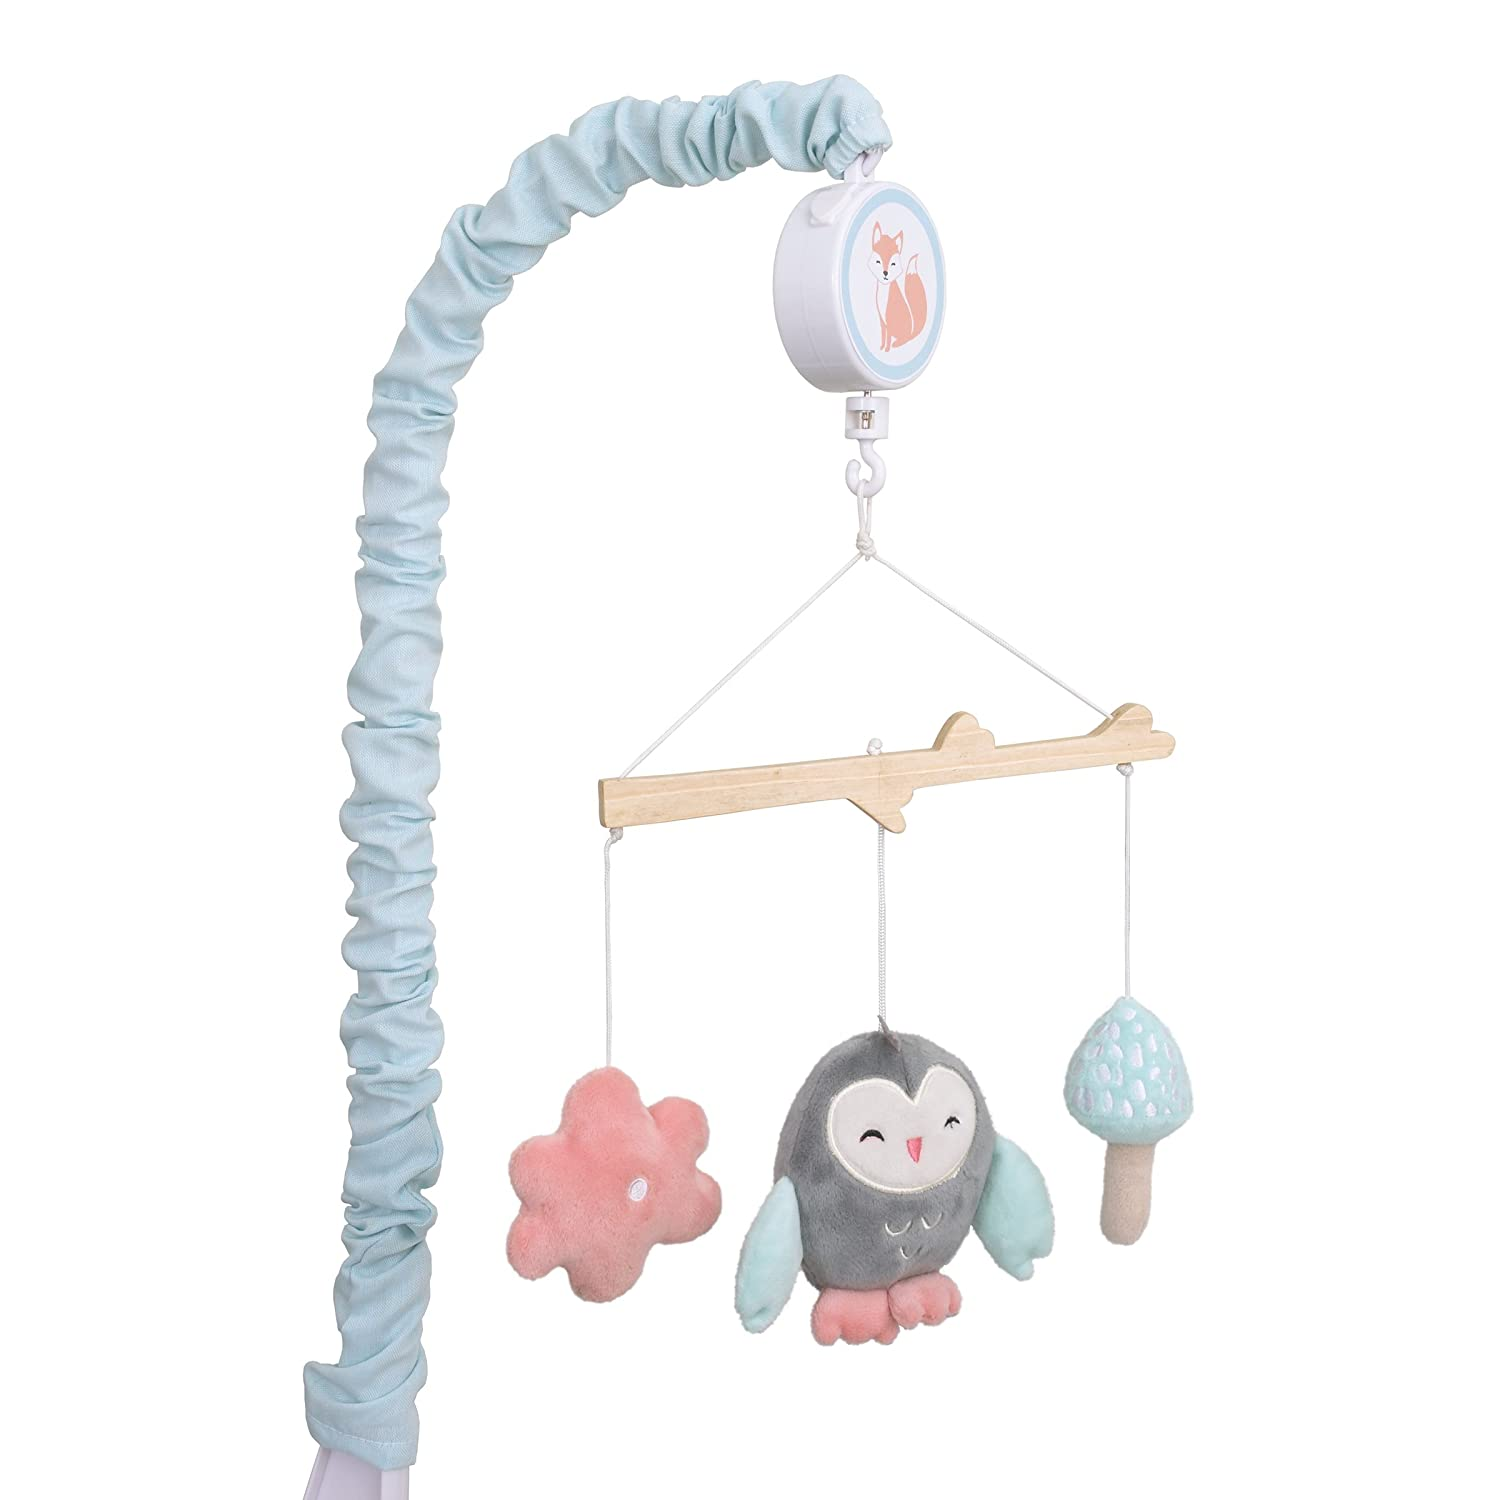 Carter's Woodland Meadow Forest/Owl Musical Mobile/Pink/Aqua/Gray Crown Crafts Infant Products 3190079